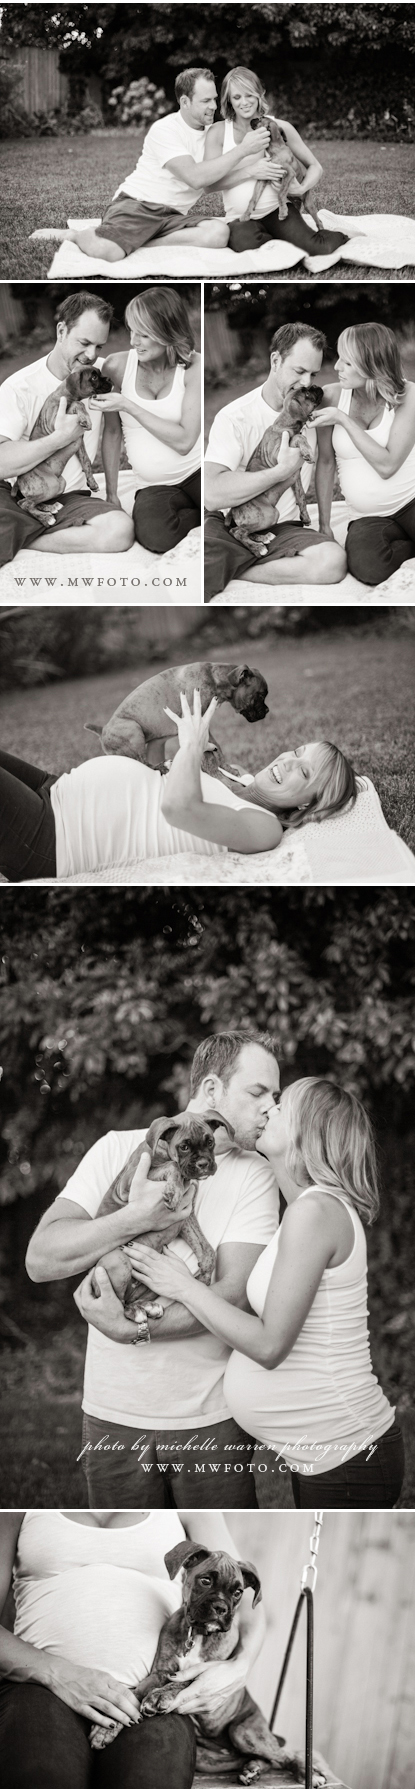 san luis obispo maternity photographer - Michelle Warren